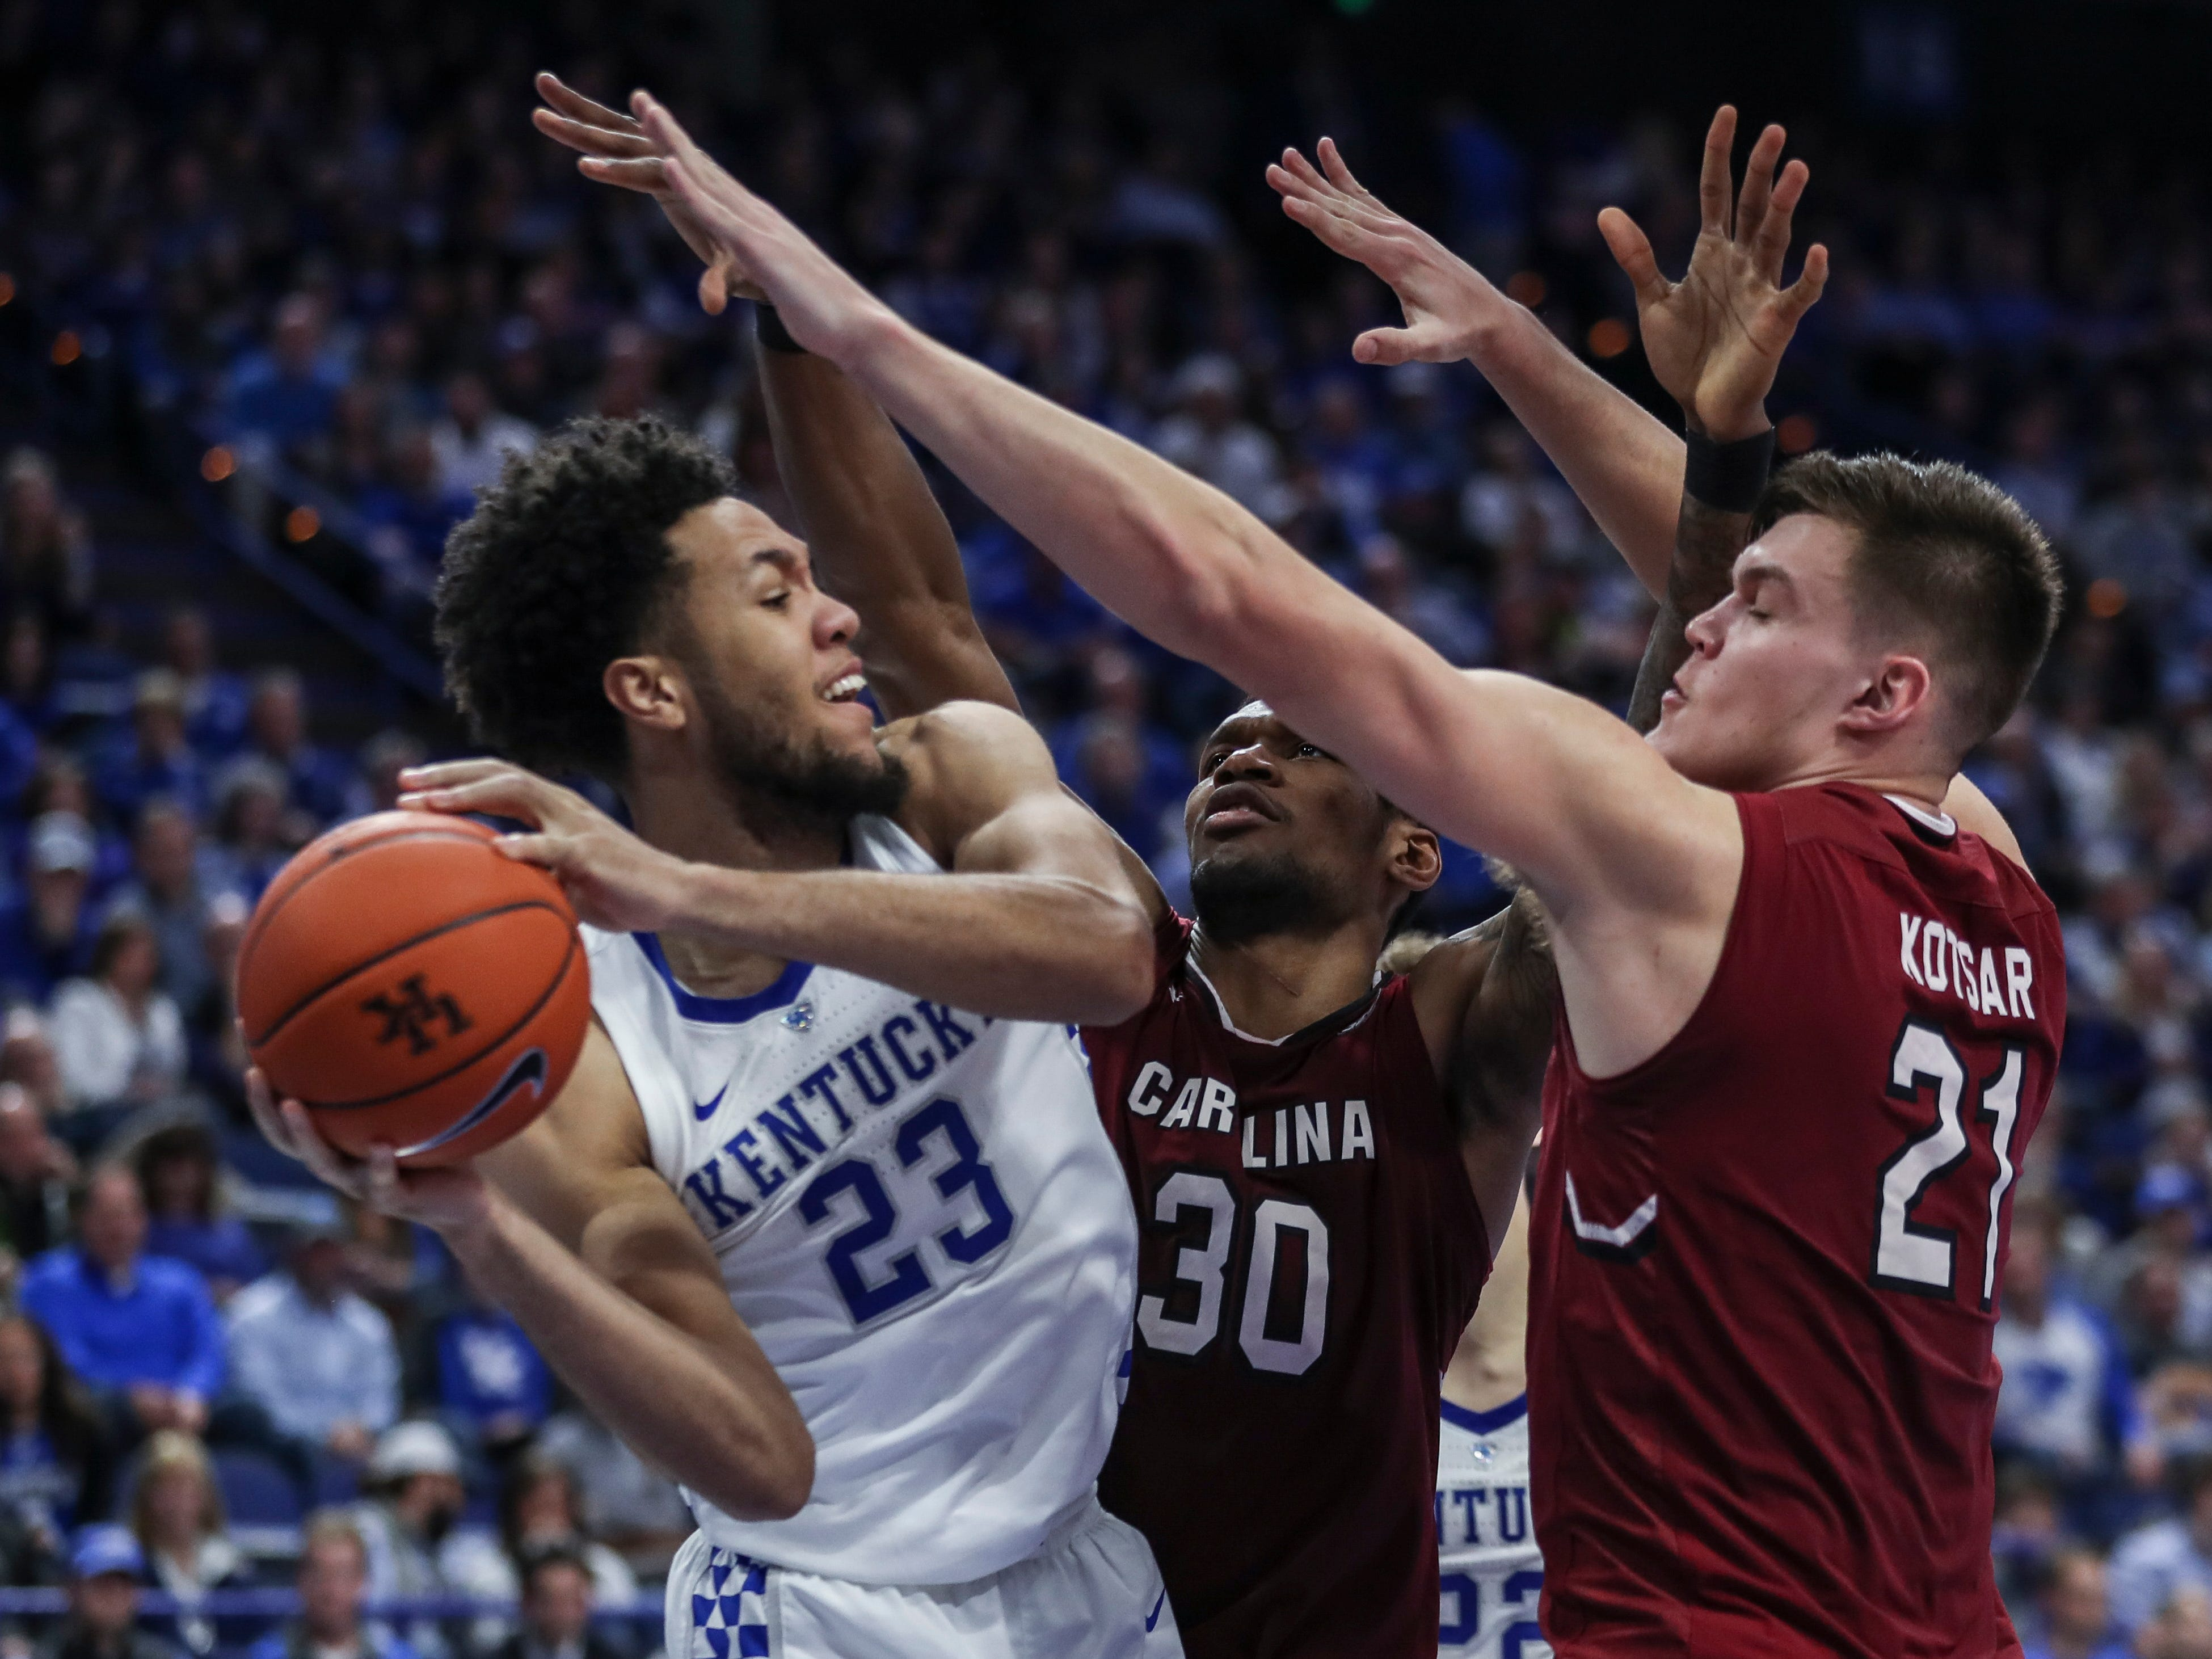 Kentucky's EJ Montgomery looks to pass under pressure from South Carolina Tuesday night. He had a season high 11 points with 13 rebounds in the 76-48 win.  Feb. 5, 2019